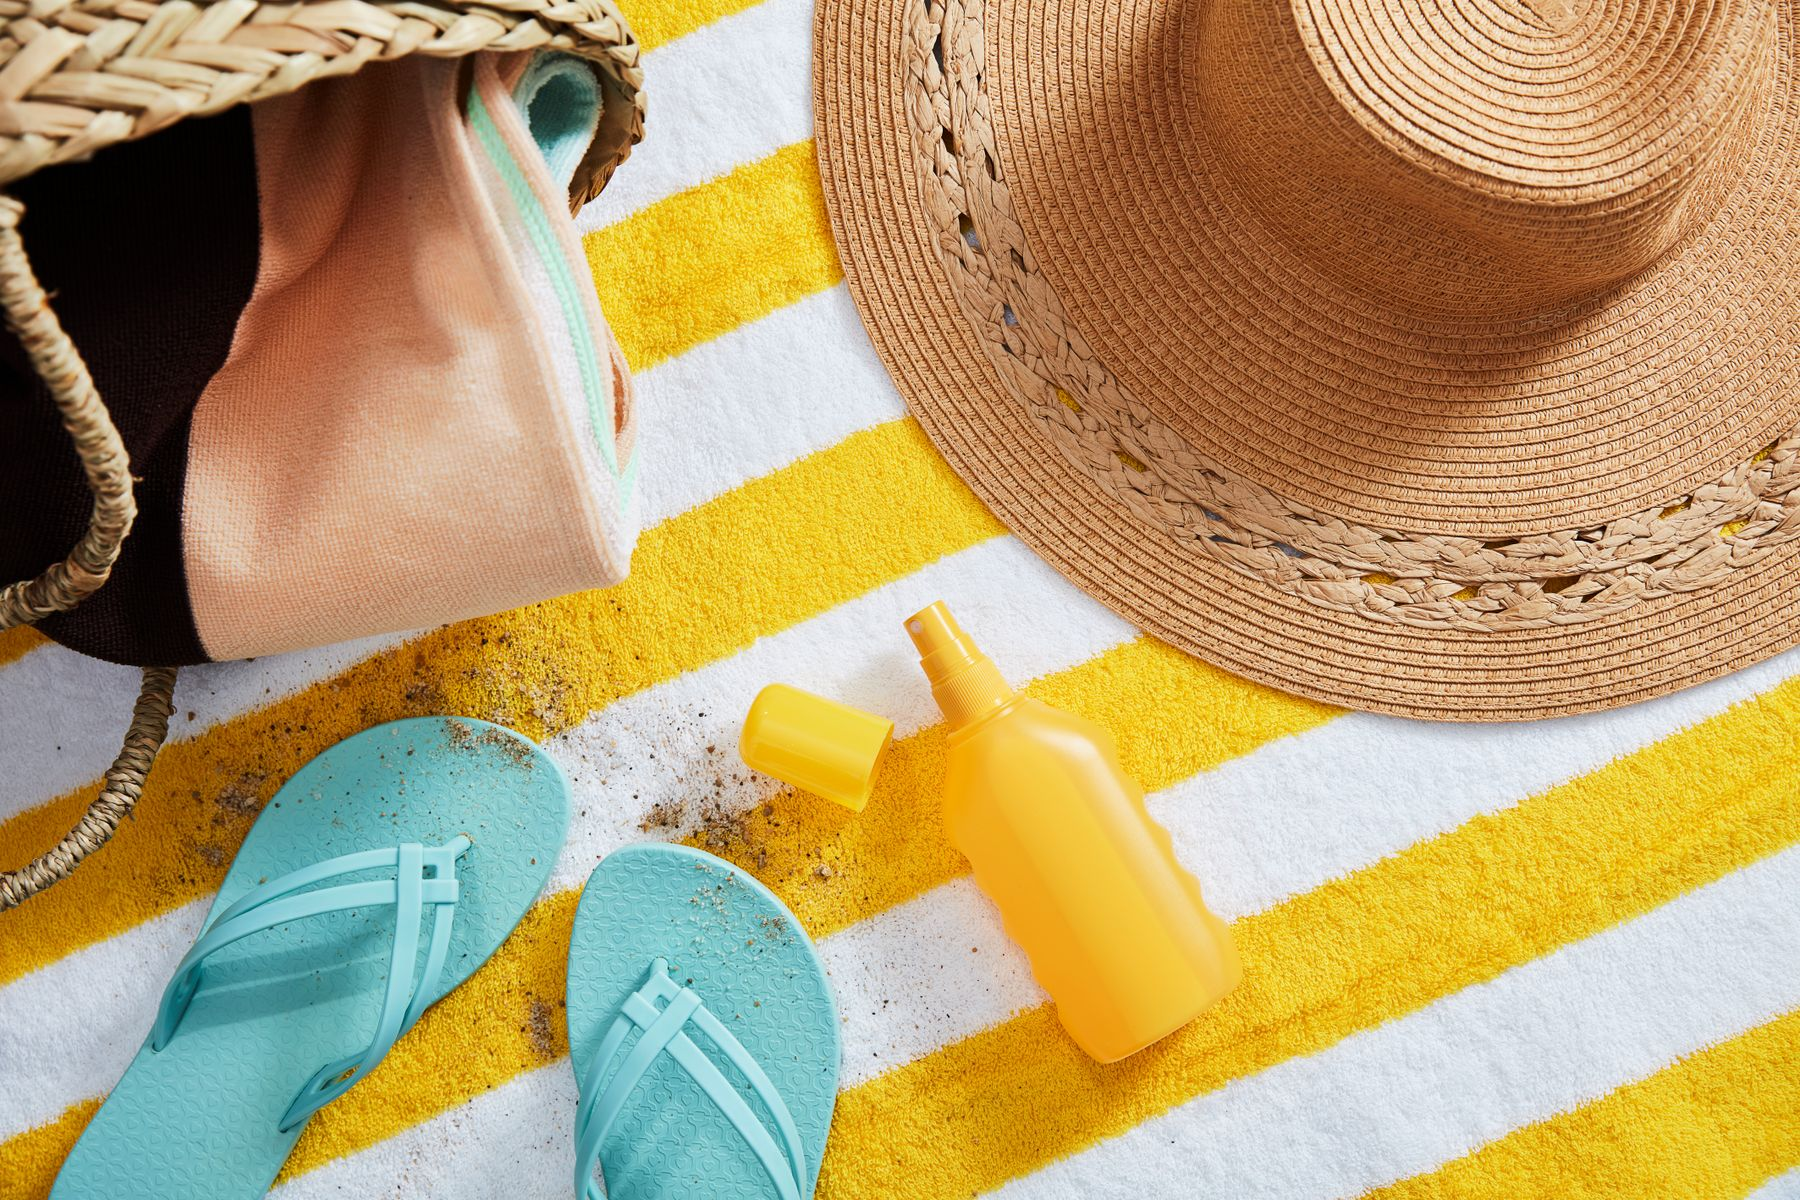 beach towel with flip flops and a sunhat